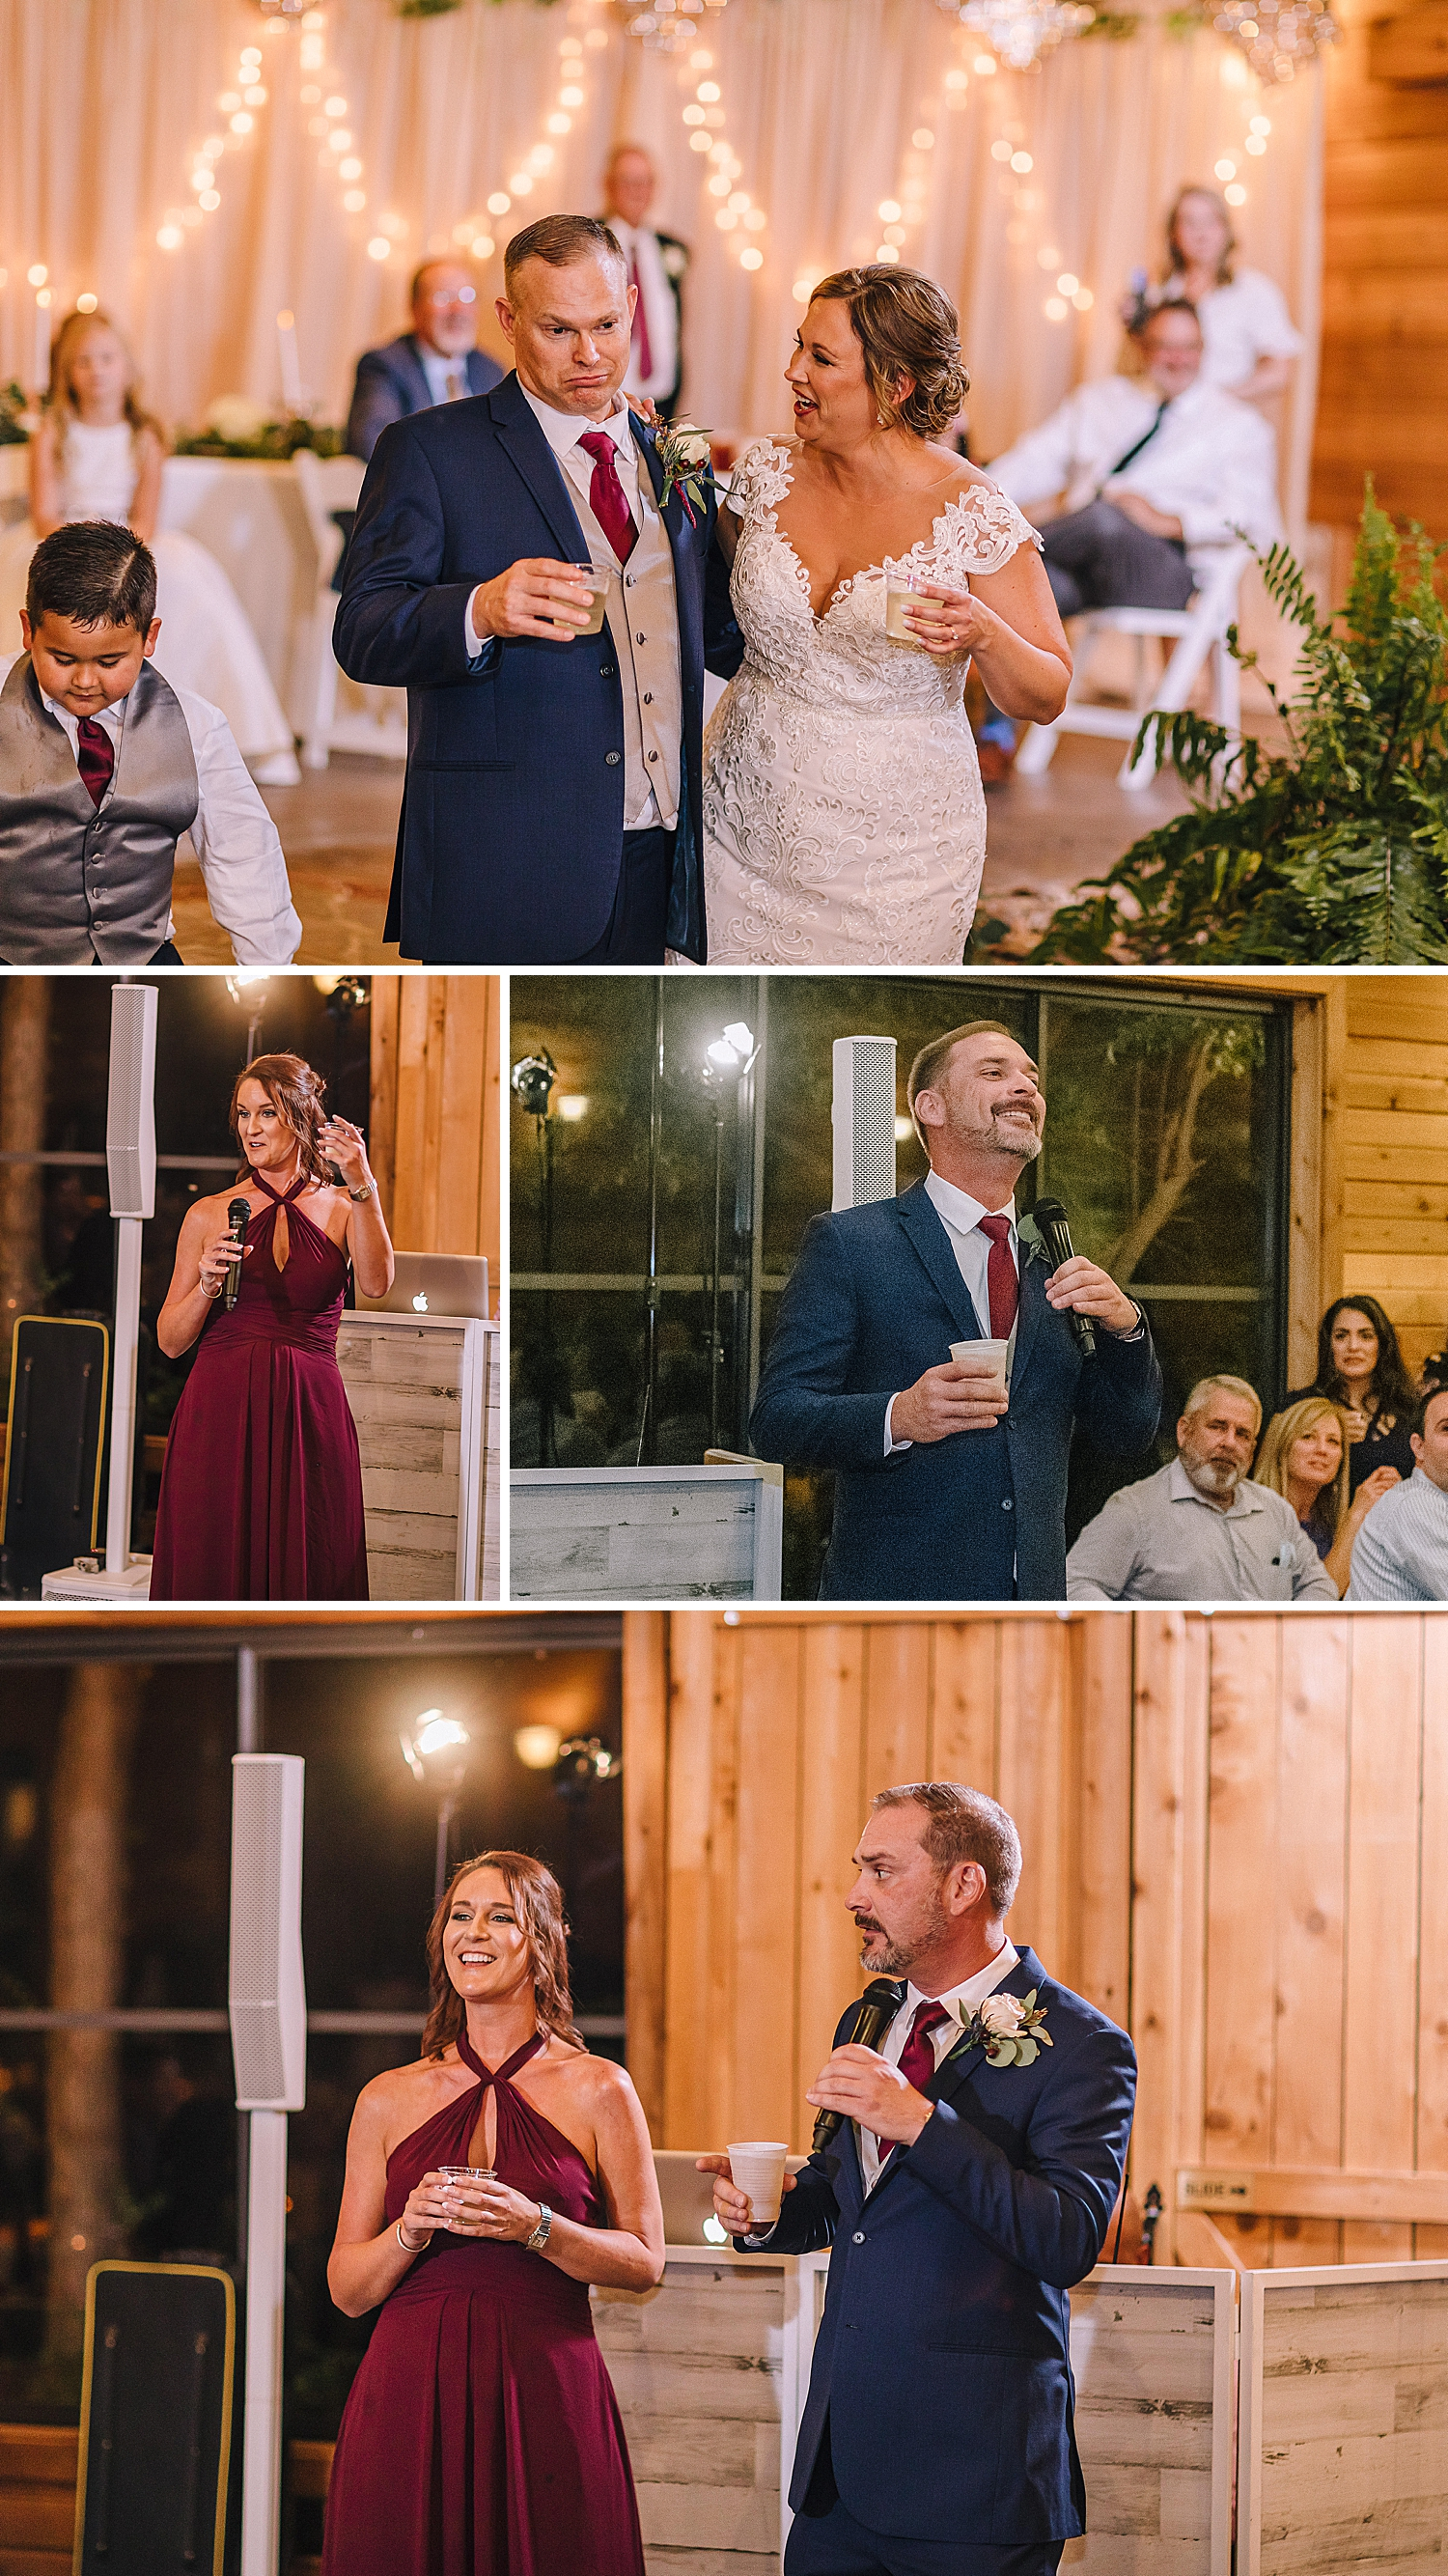 Geronimo-Oaks-Wedding-Venue-Seguin-Texas-Elegant-Navy-Burgundy-Wedding-Carly-Barton-Photography_0072.jpg